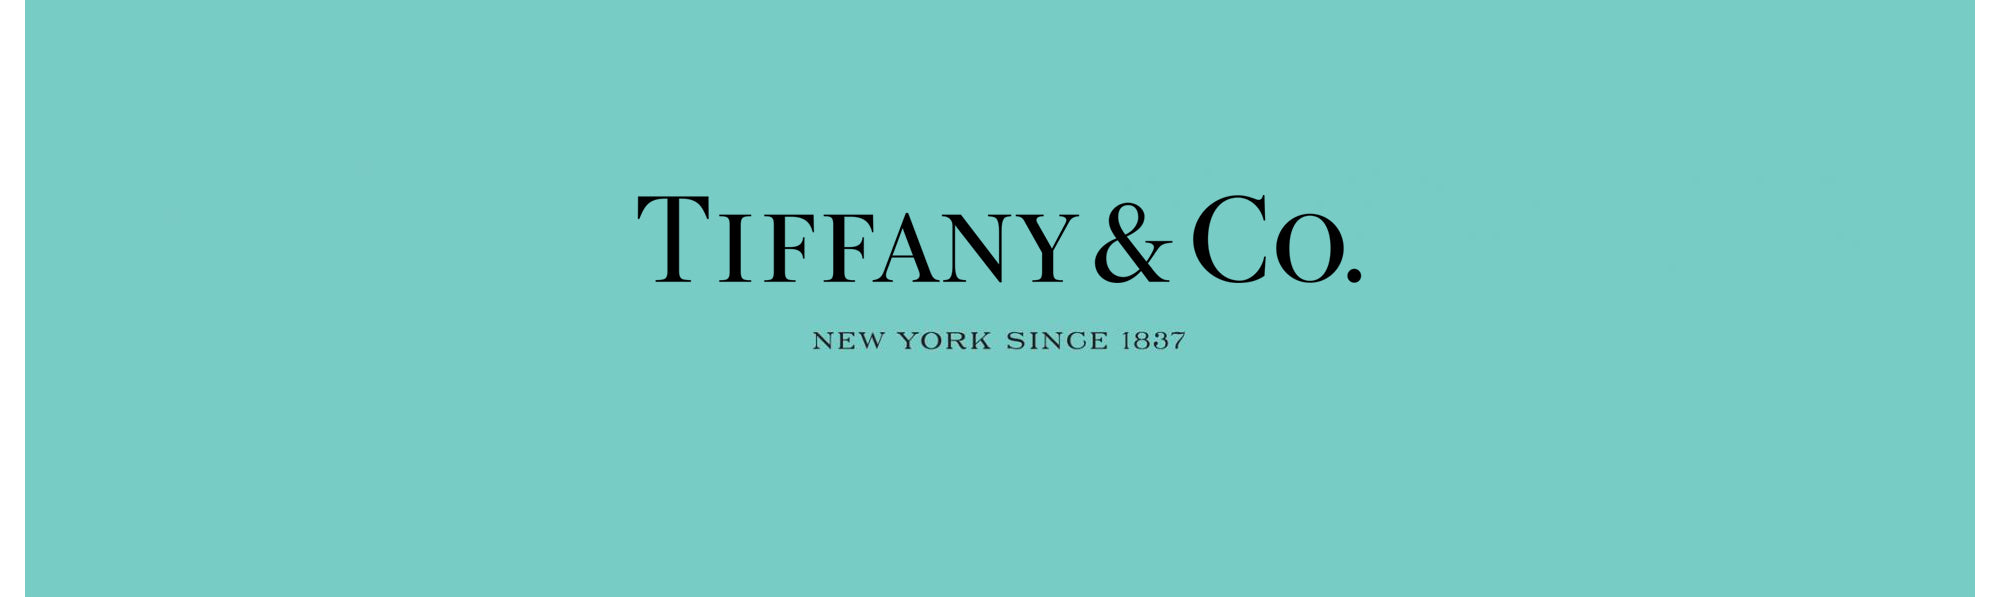 Tiffany & Co. Optical